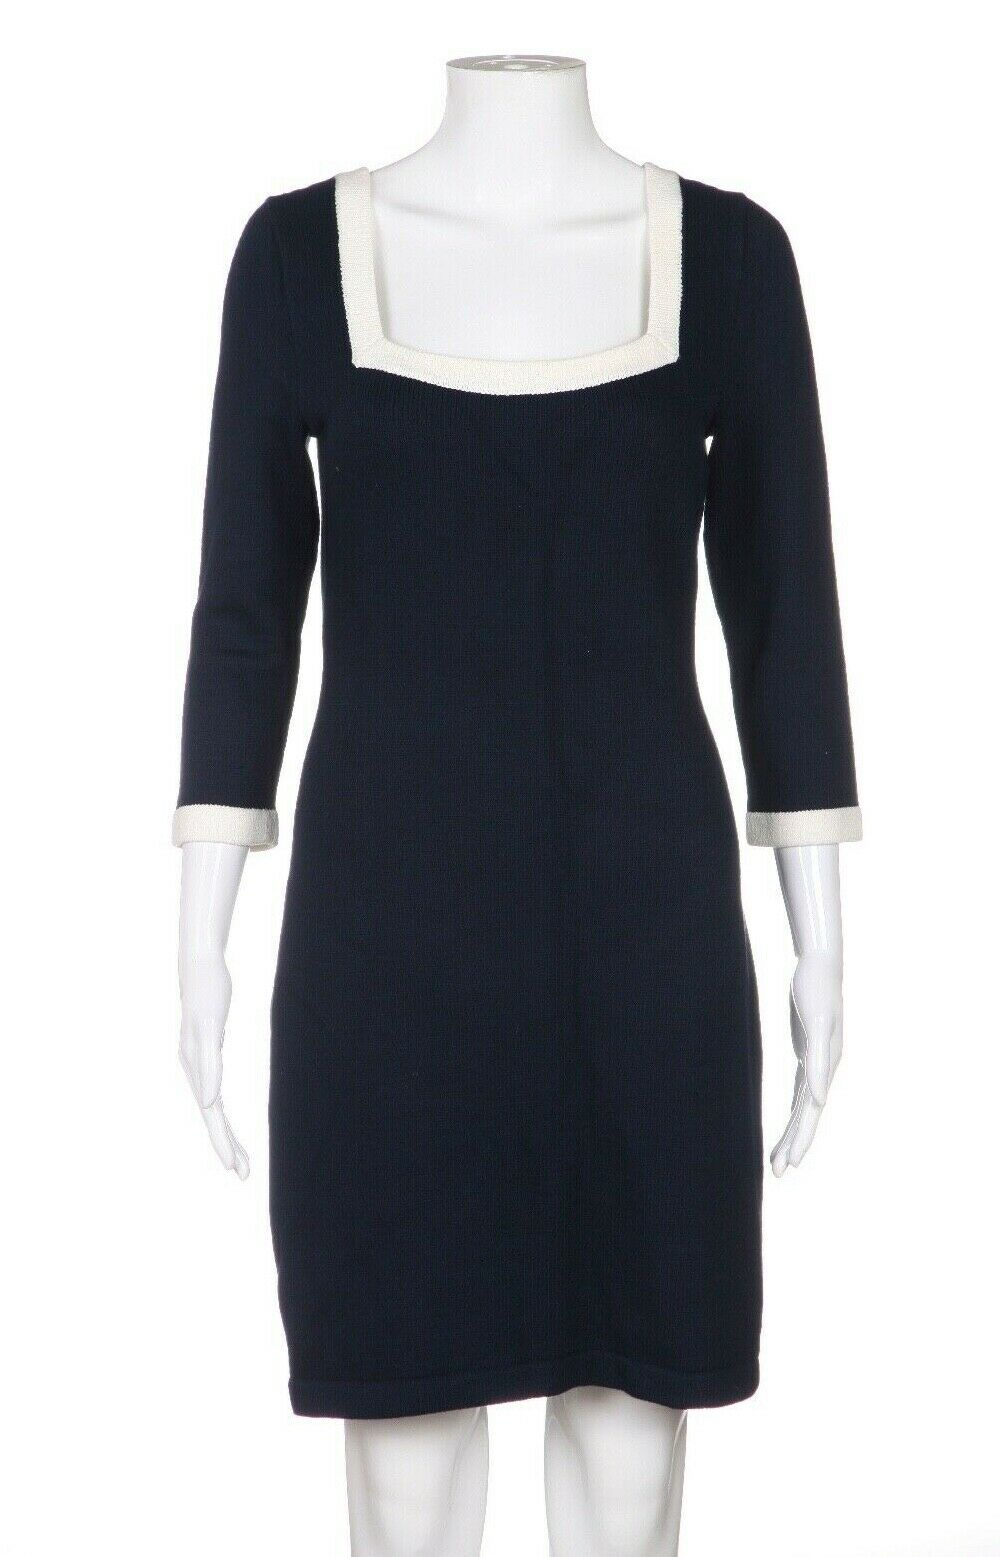 PETER ENGLAND NANTUCKET Knit Dress Size S (New)